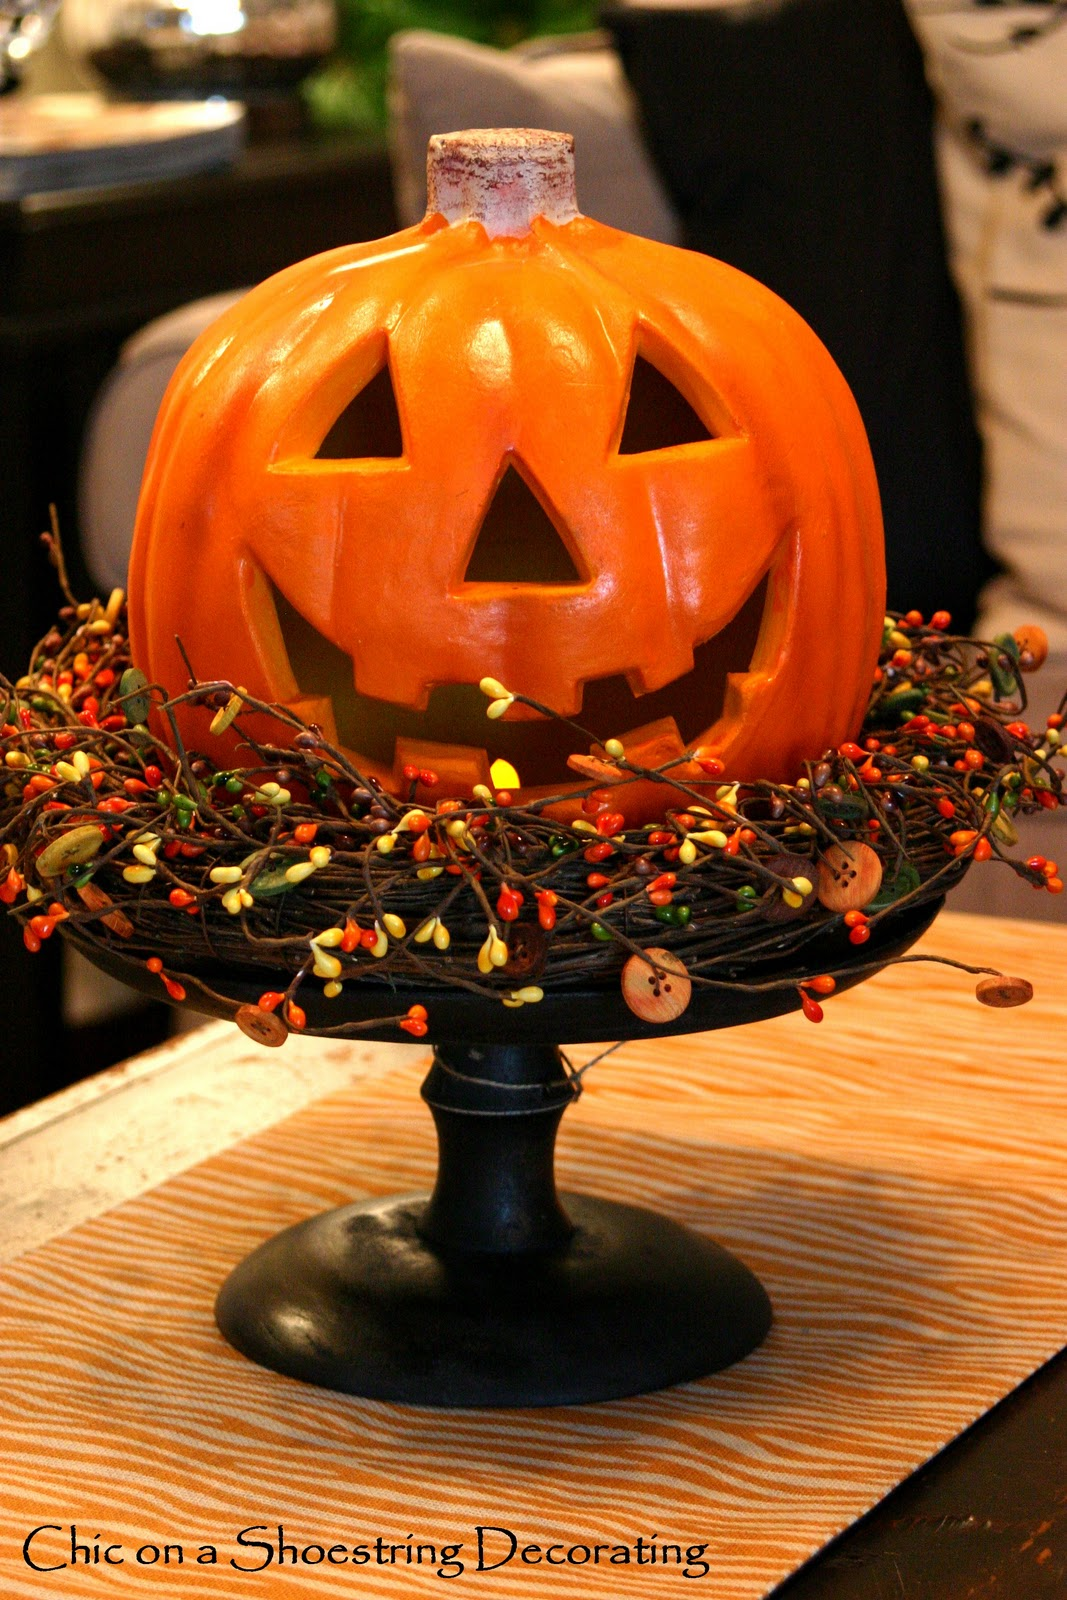 Chic on a Shoestring Decorating More Halloween Black Birds